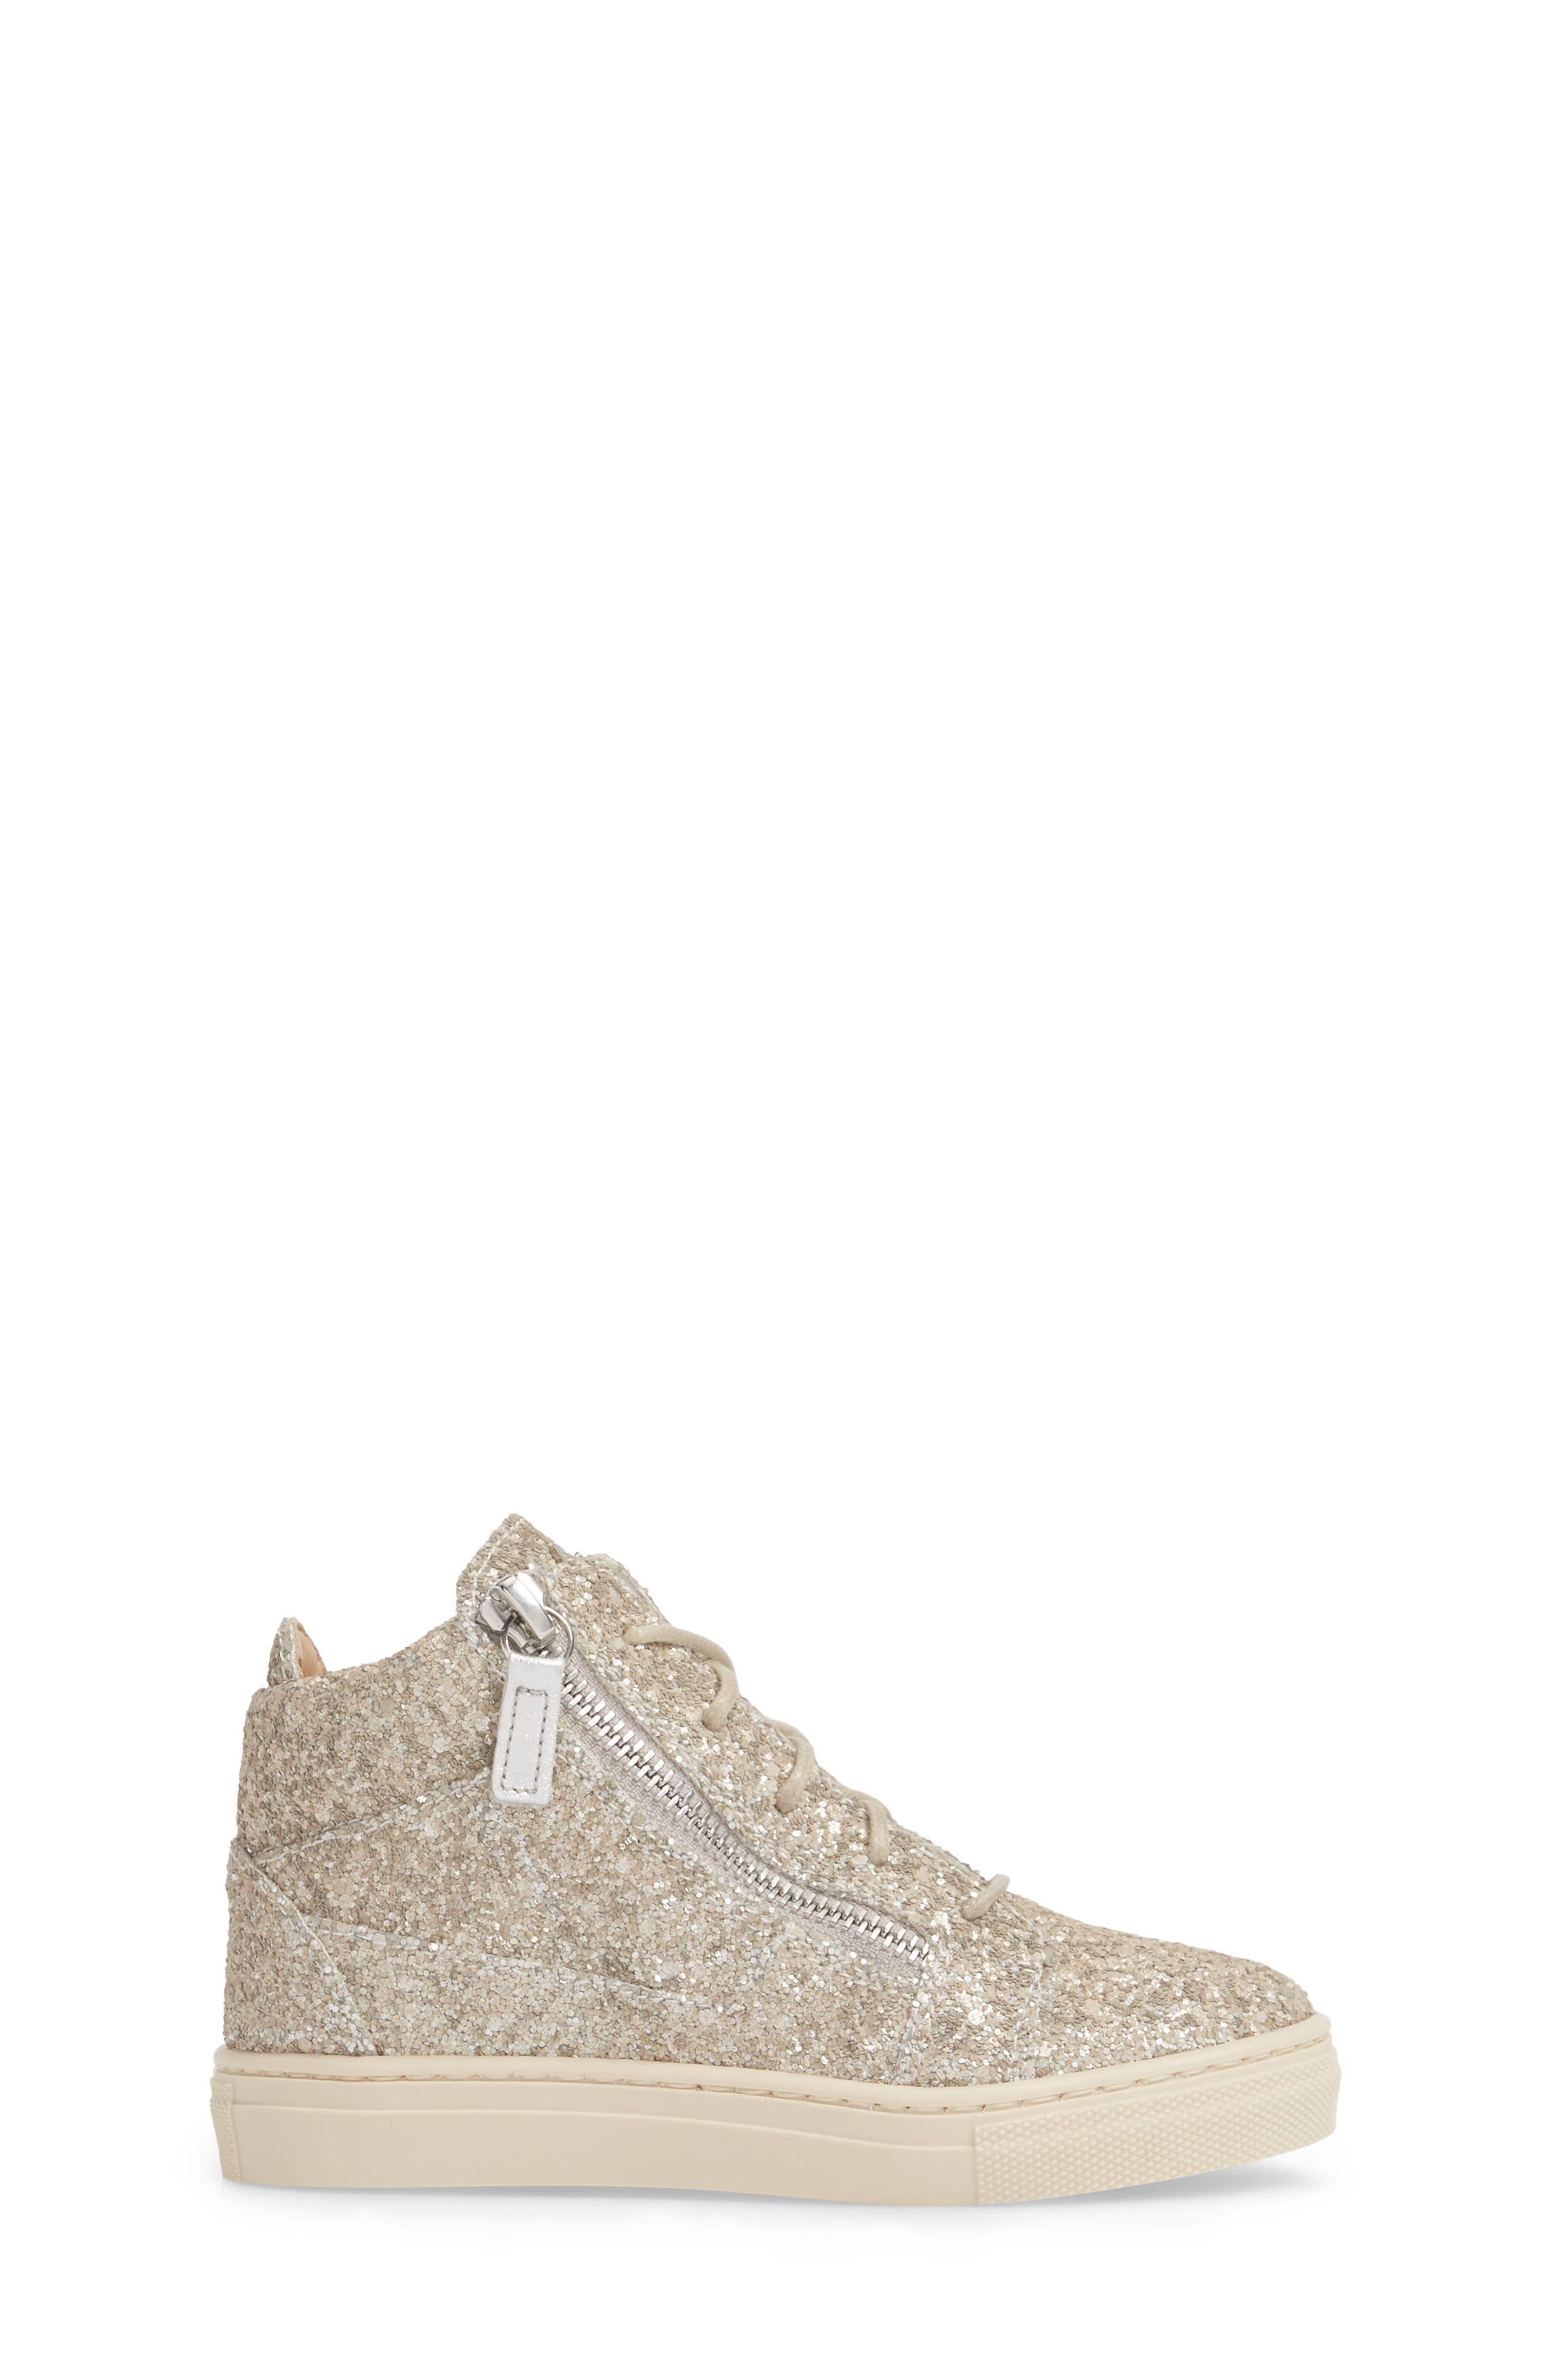 Natalie High Top Sneaker,                             Alternate thumbnail 3, color,                             Silver Glitter